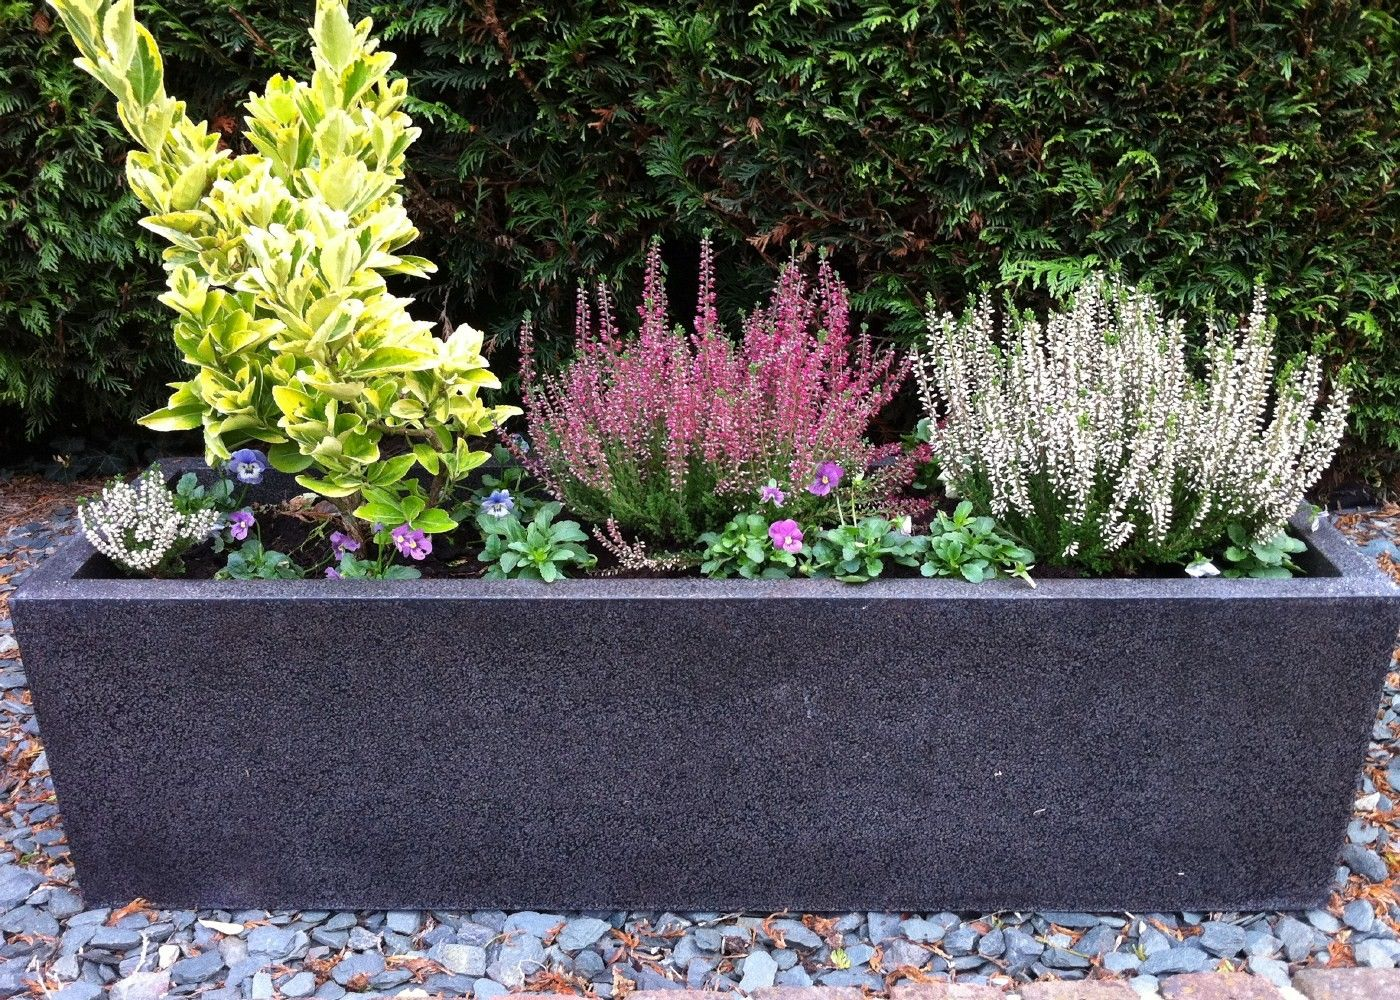 Planters fibreglass planters modern trough large for Large garden planter ideas